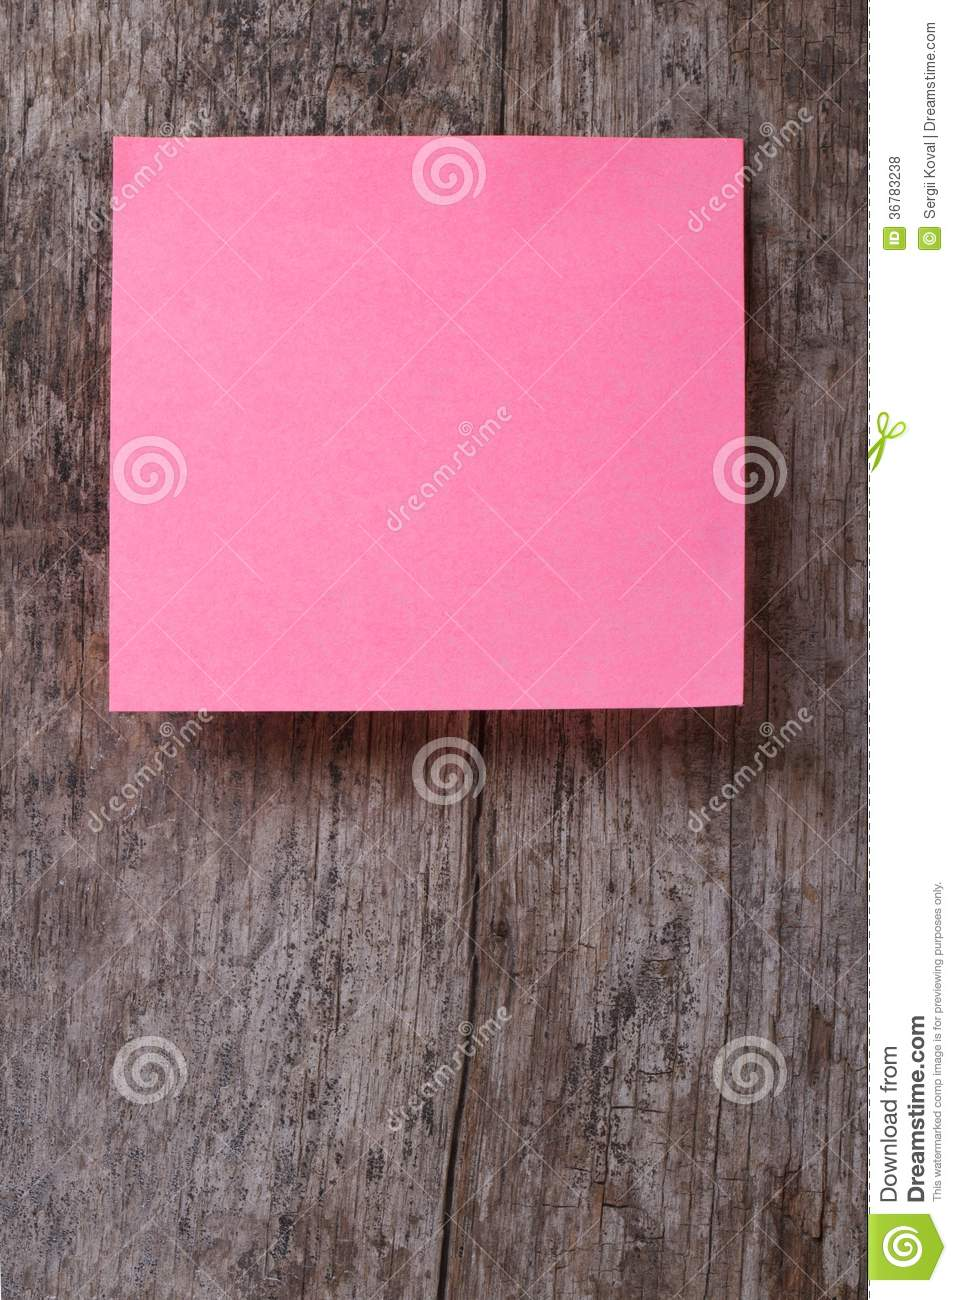 Pink sticker on an old wooden table close up royalty free